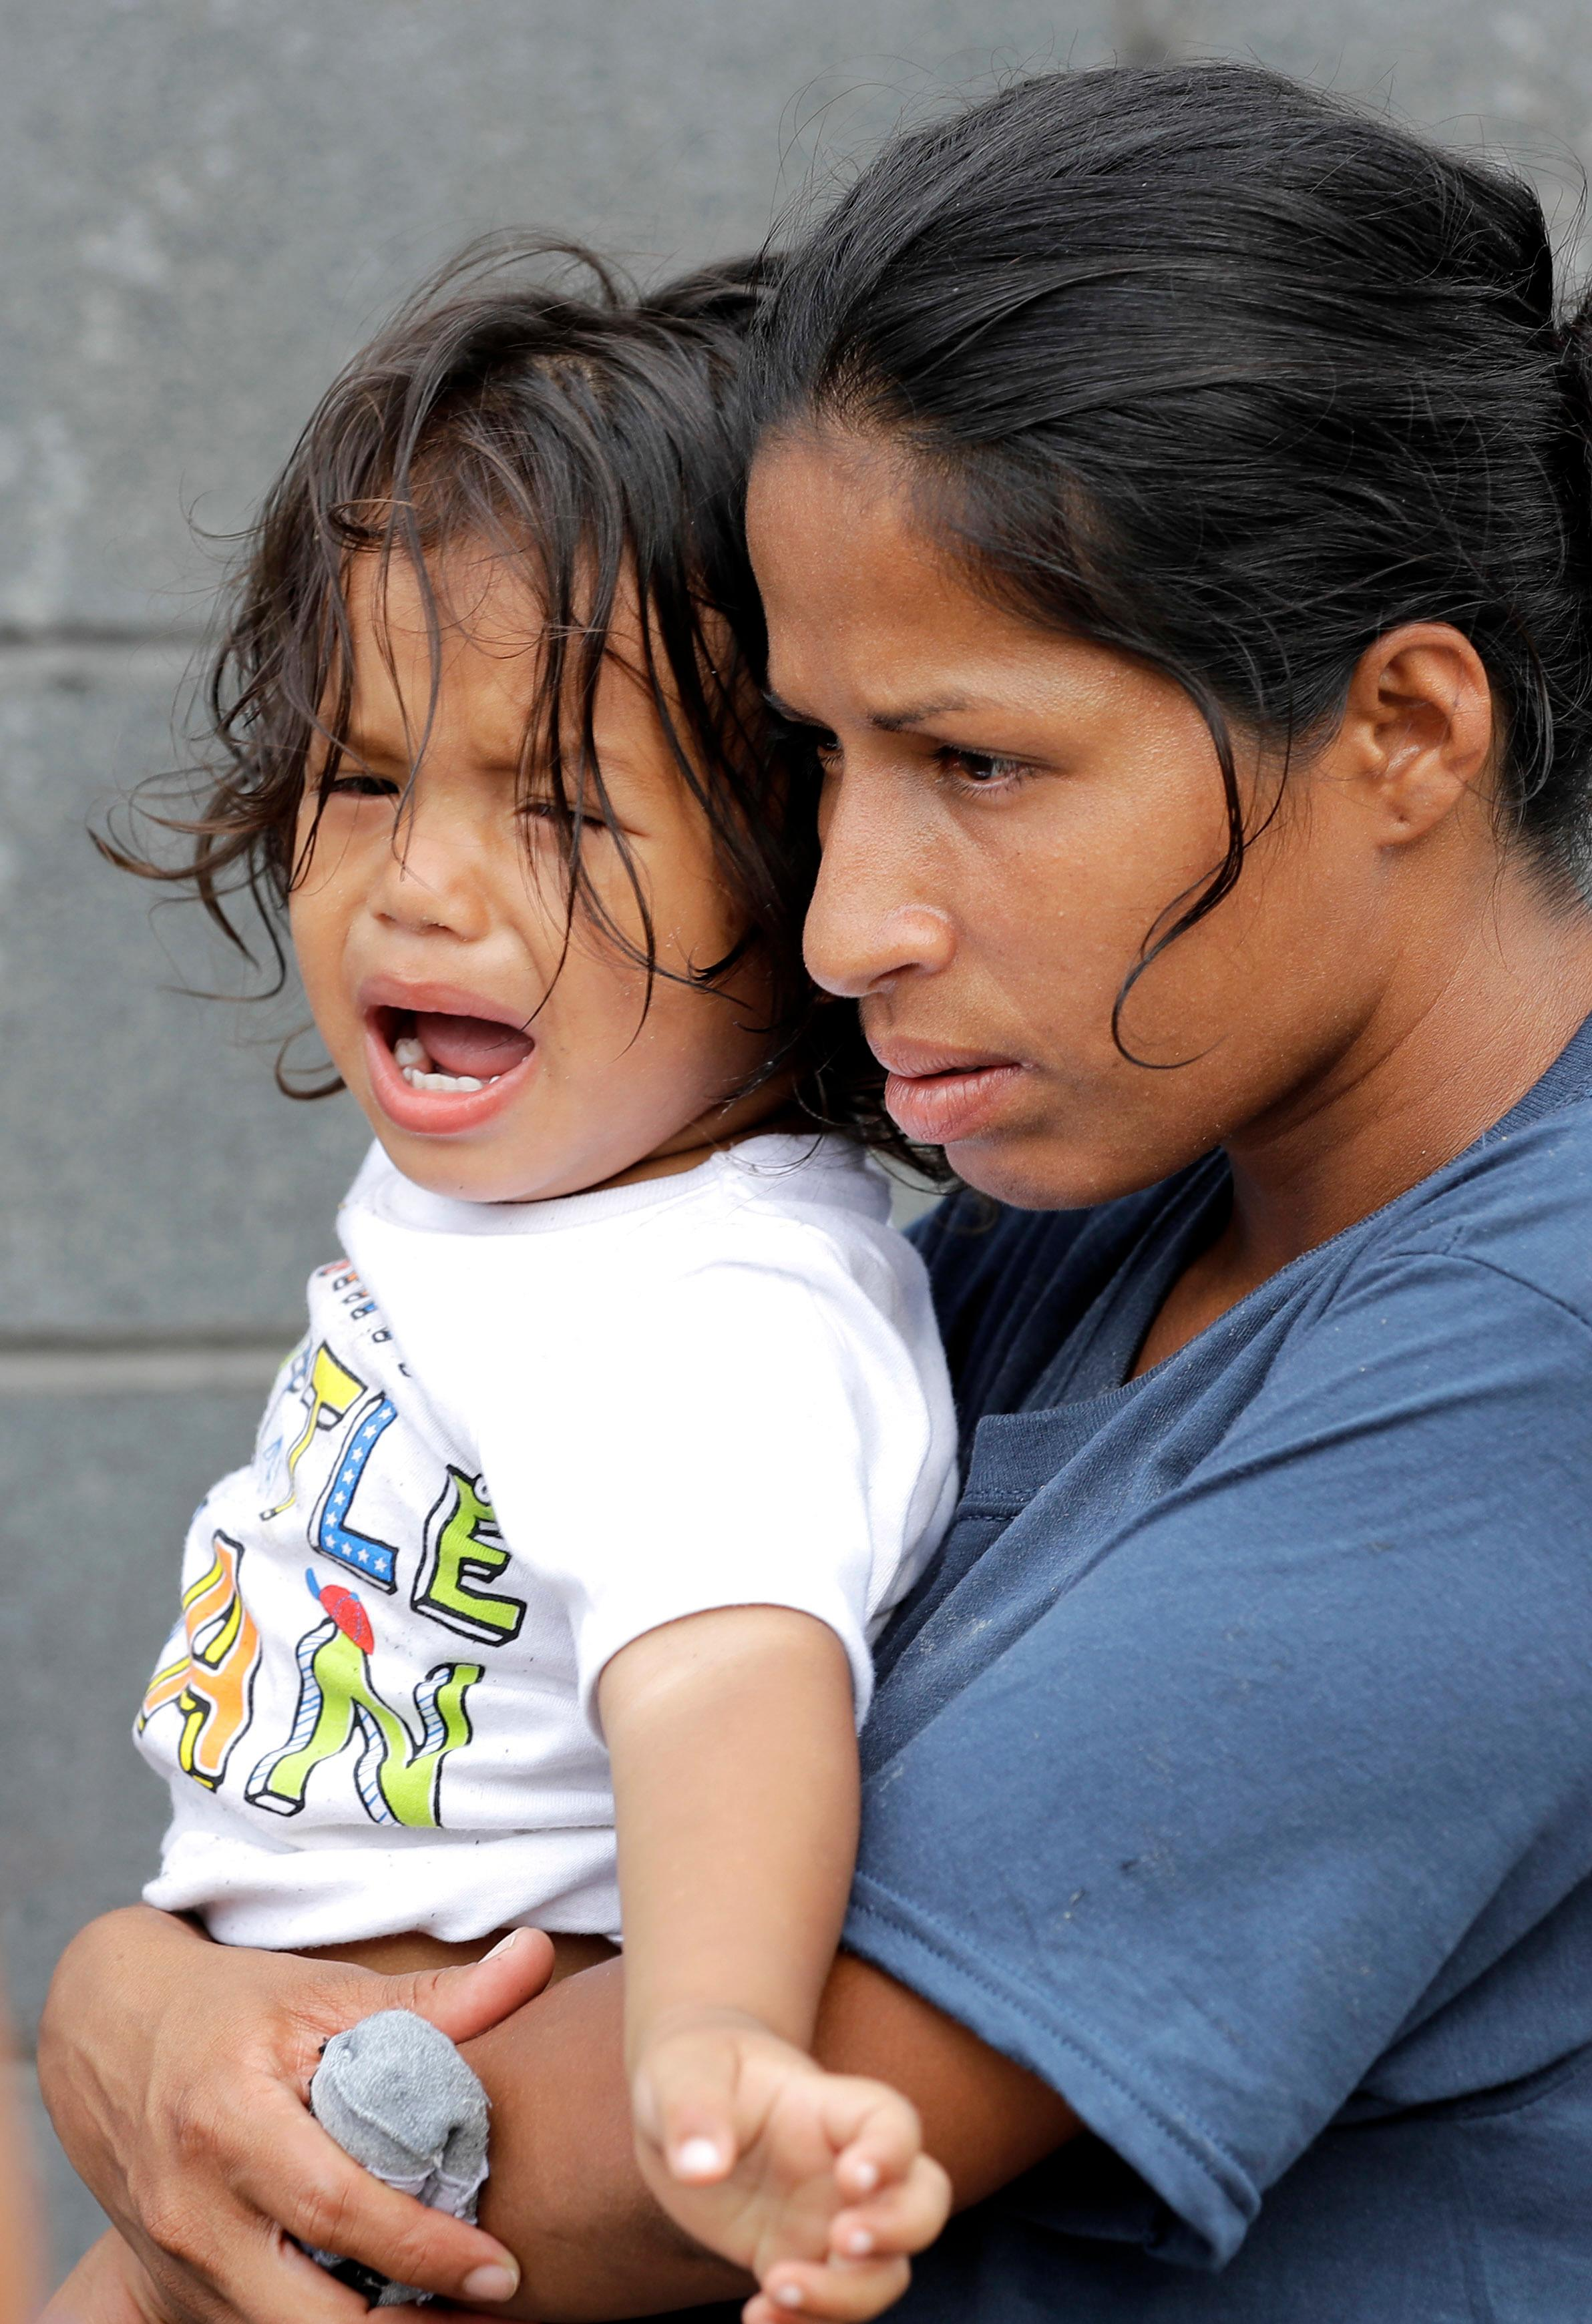 Jesus Funes, 19-months, cries as his mother, Diva Funes, both immigrants from Honduras, holds him after being escorted back to Reynosa, Mexico, Thursday, June 21, 2018. The family, who was seeking asylum, said they were told by officials they would be separated so they voluntarily returned to Mexico. (AP Photo/David J. Phillip)